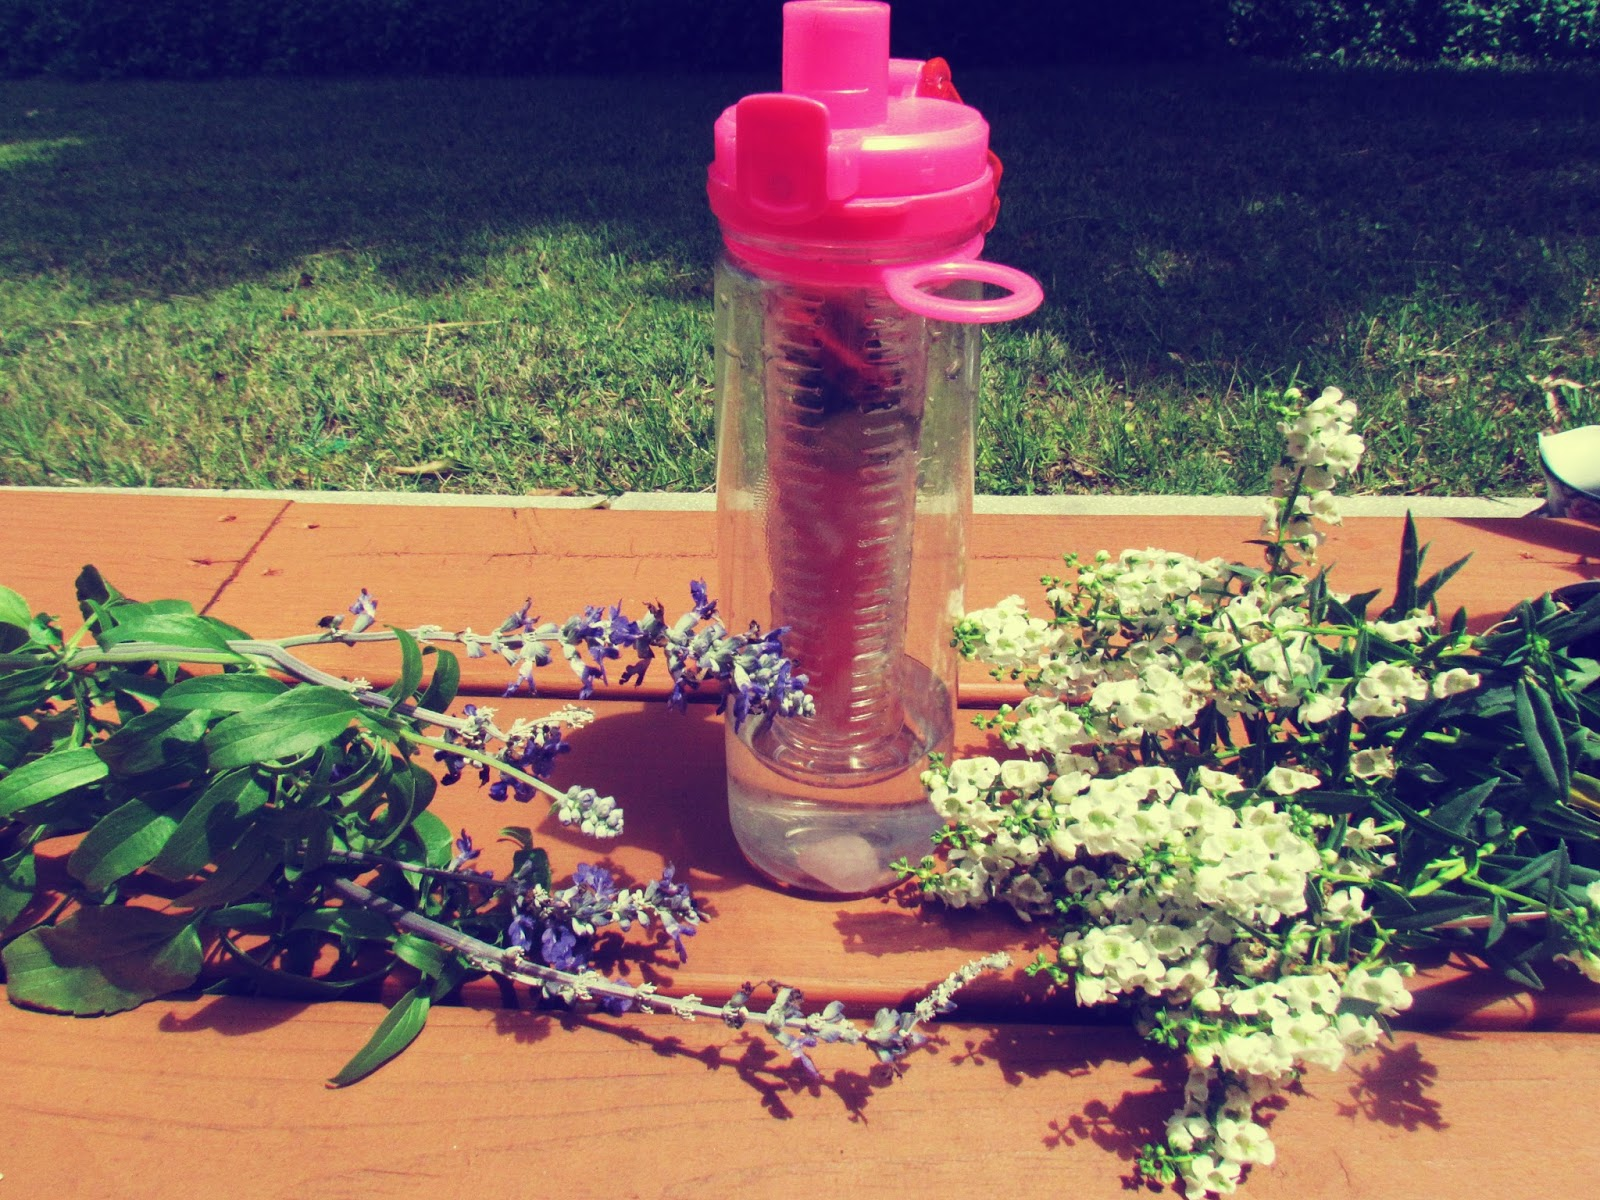 Fruit Infuser Water Bottle for Hiking Adventures + natural herbs and flower botanicals like lavender and blue hydrangeas